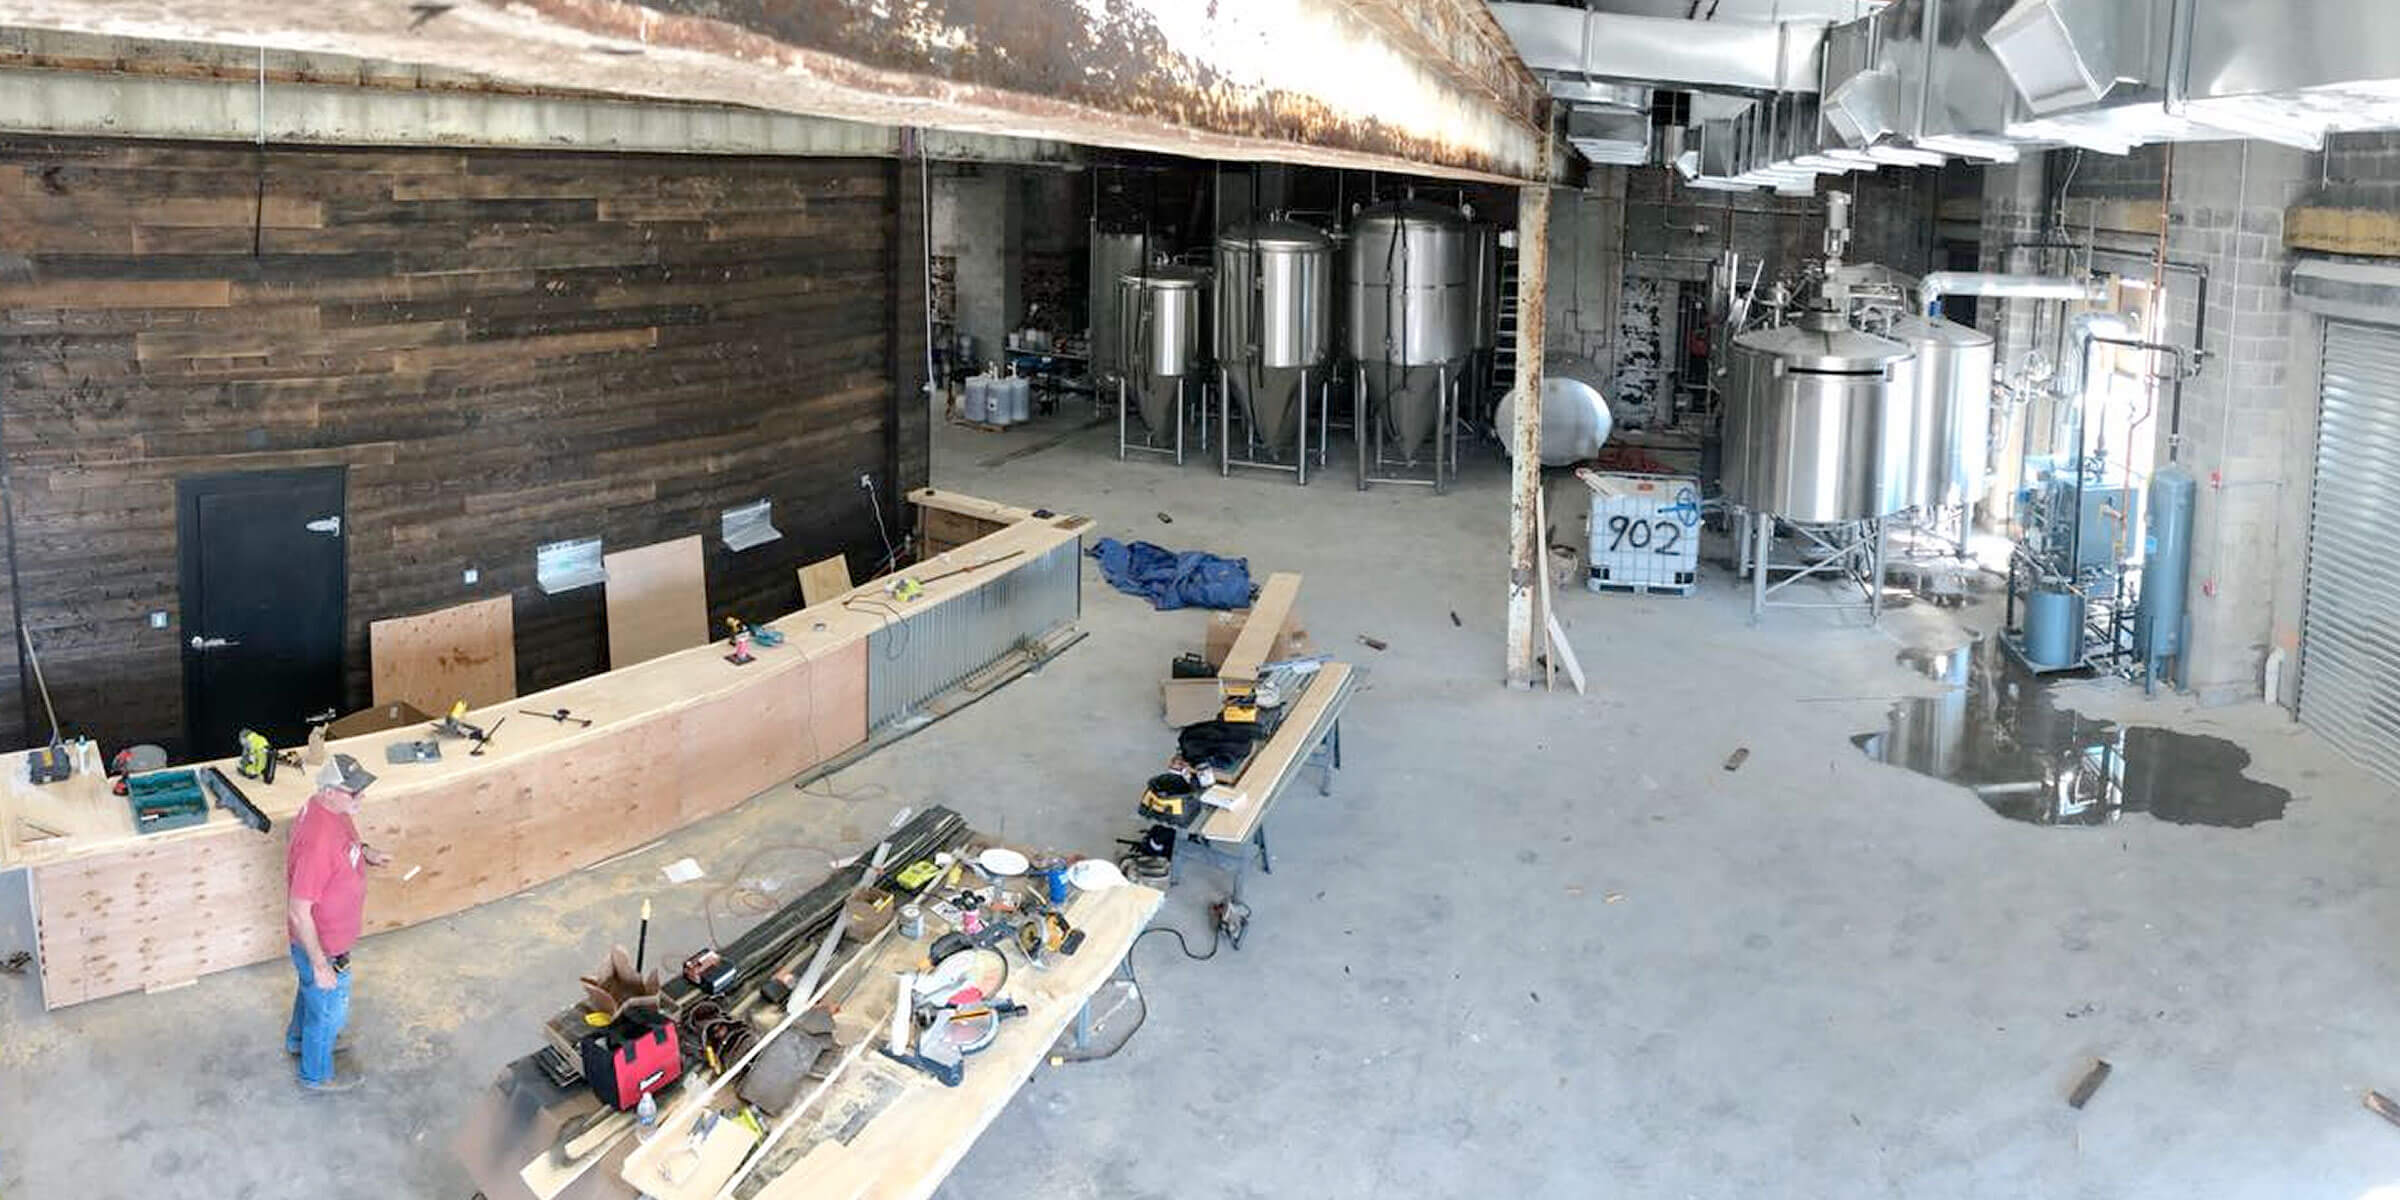 The taproom and brewhouse in progress inside the new 902 Brewing Company location in Jersey City, New Jersey